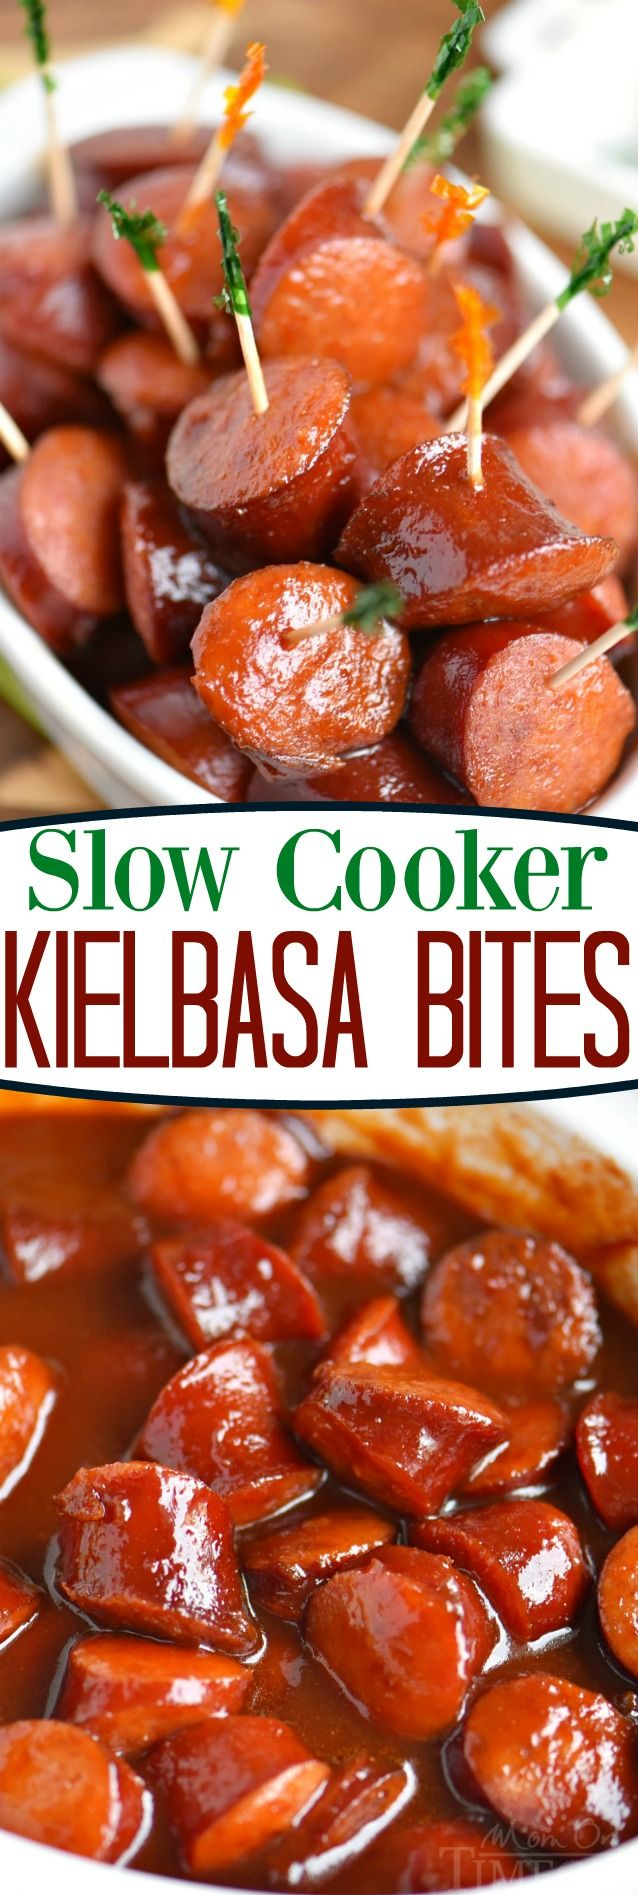 The best appetizer ever! These Slow Cooker Kielbasa Bites are so easy to make an…